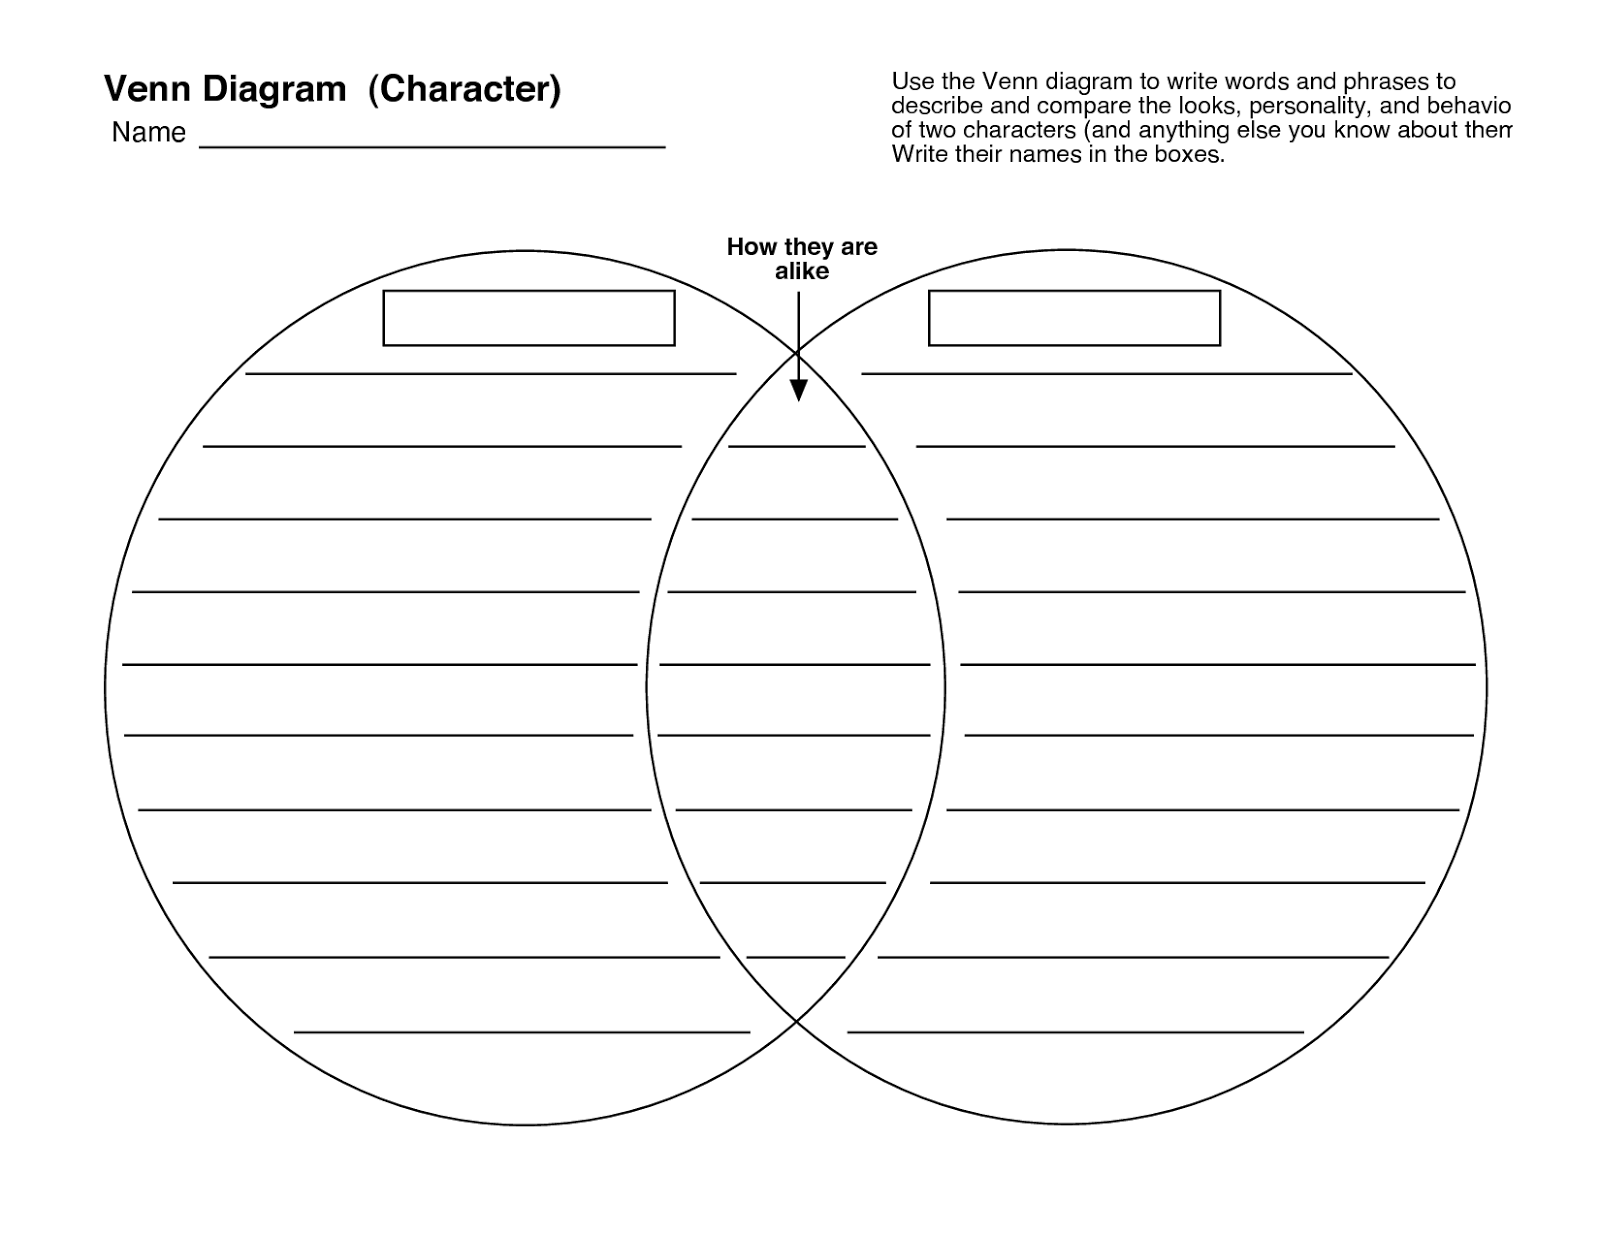 Venn Diagram To Compare Chicks And Lambs To Go With Spring Book 5 See How They Grow Chi Venn Diagram Template Venn Diagram Printable Venn Diagram Worksheet [ 1236 x 1600 Pixel ]